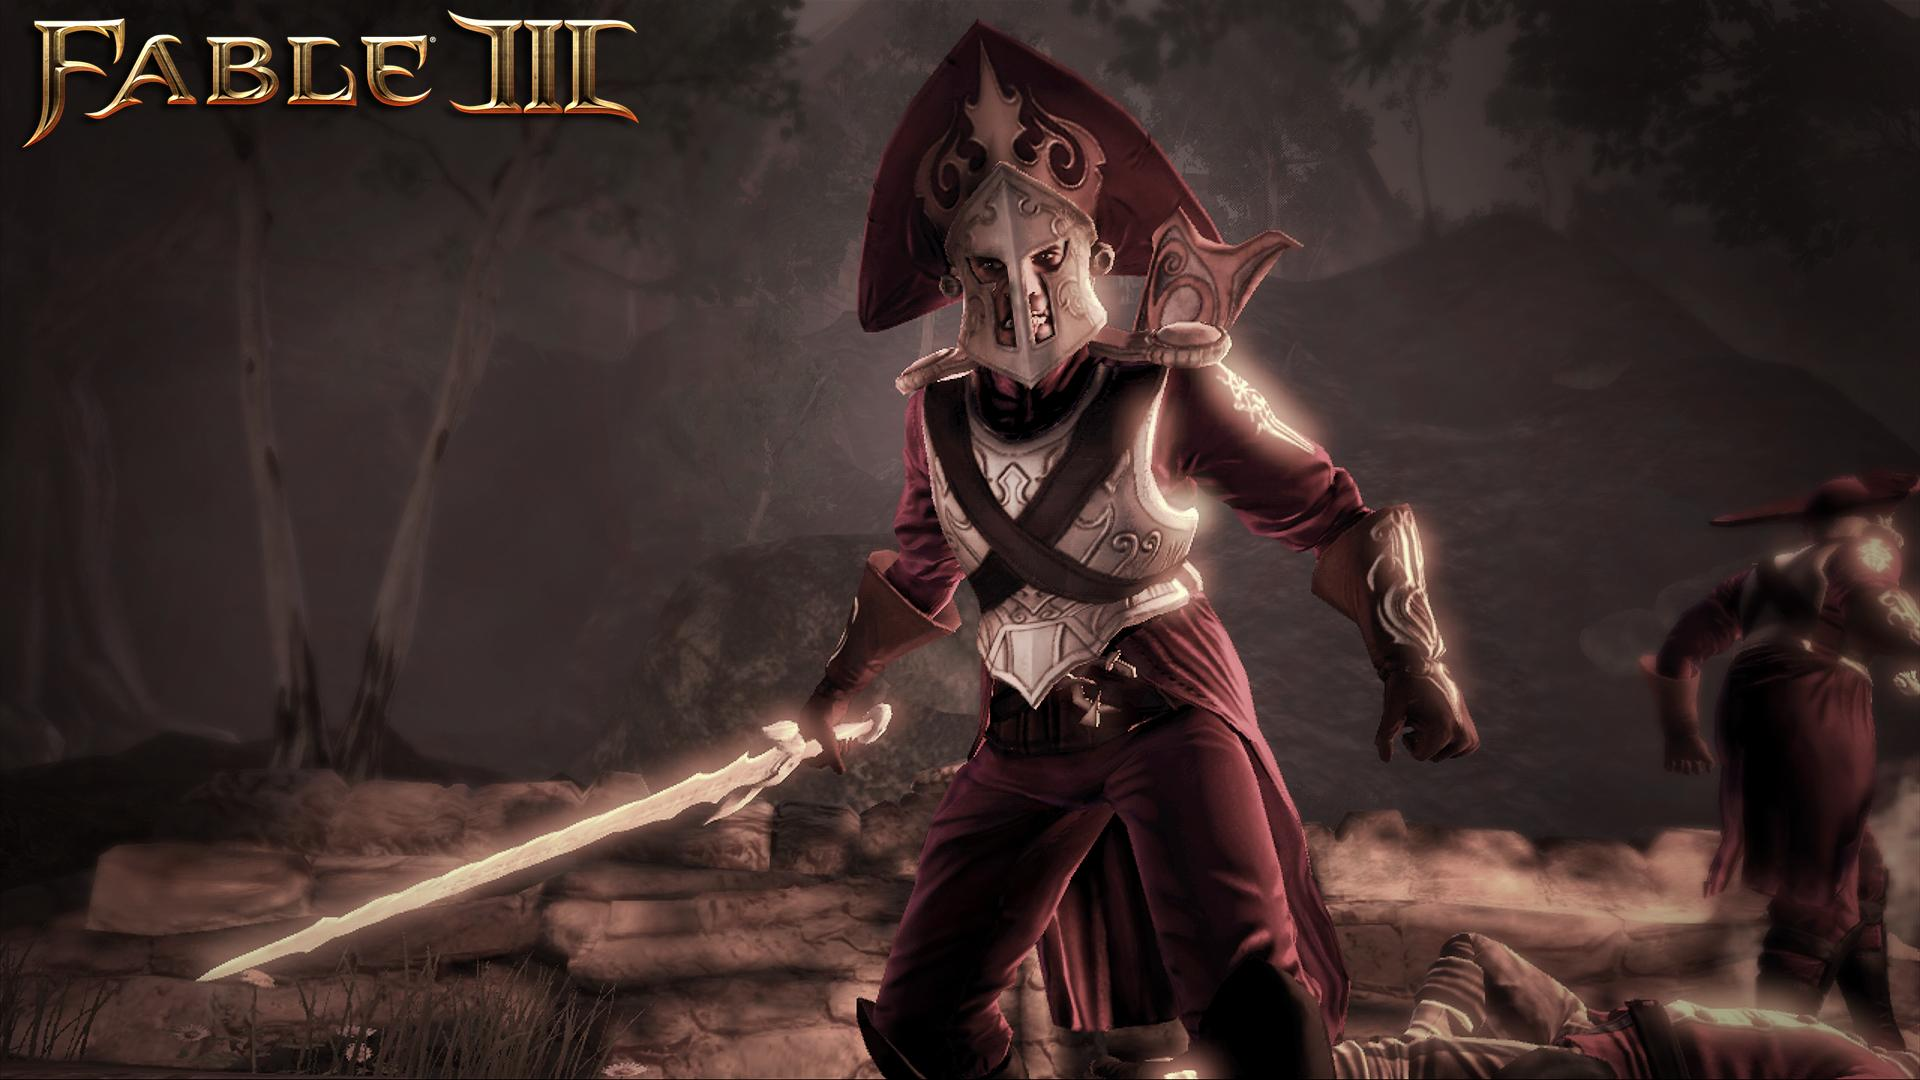 Plus D Images De Fable 3 Xbox One Xboxygen